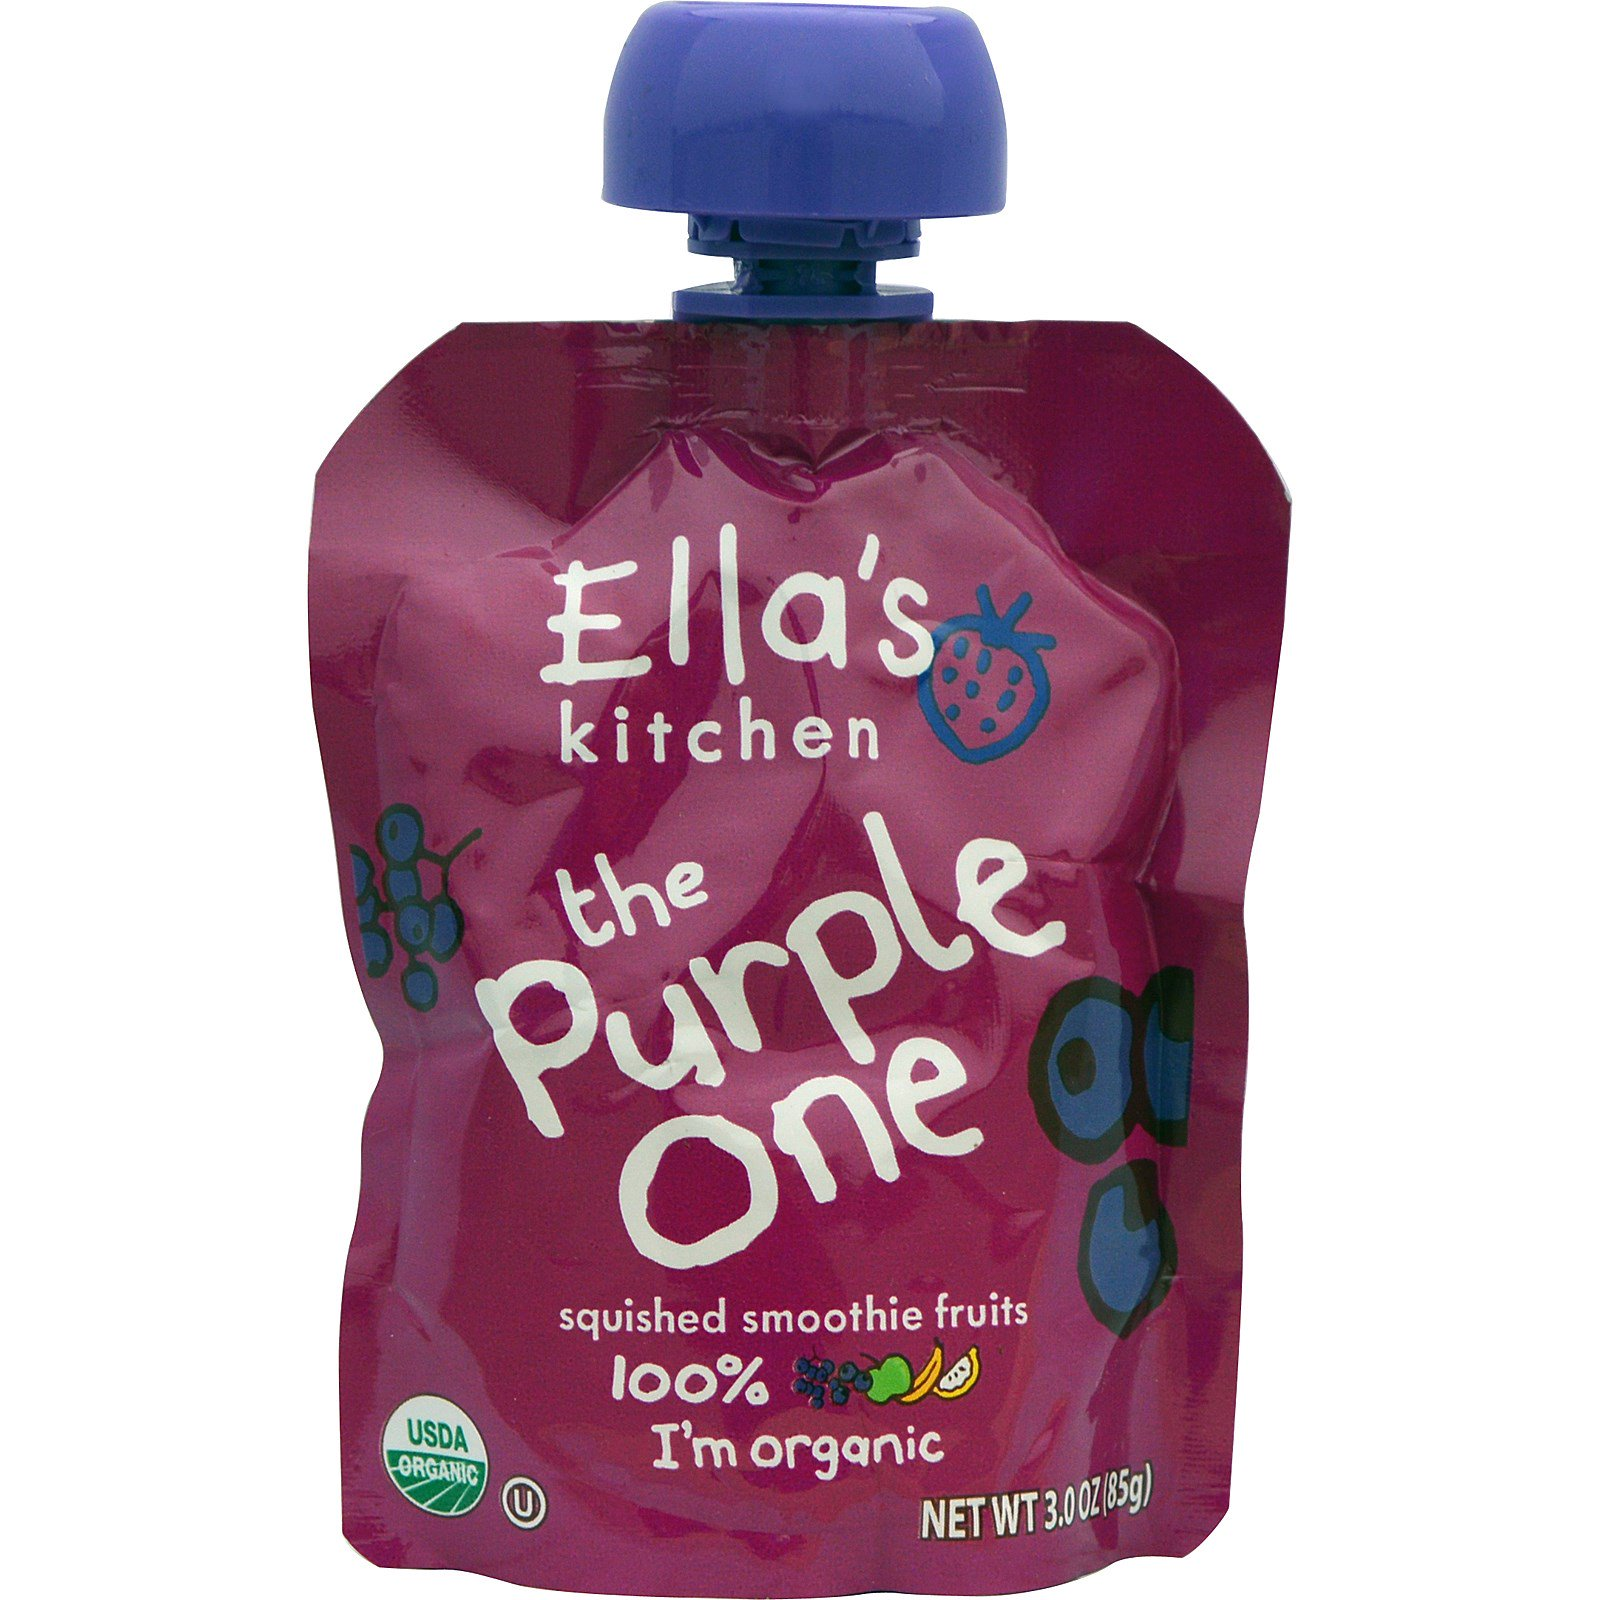 ellas kitchen the purple one squished smoothie fruits - Ellas Kitchen